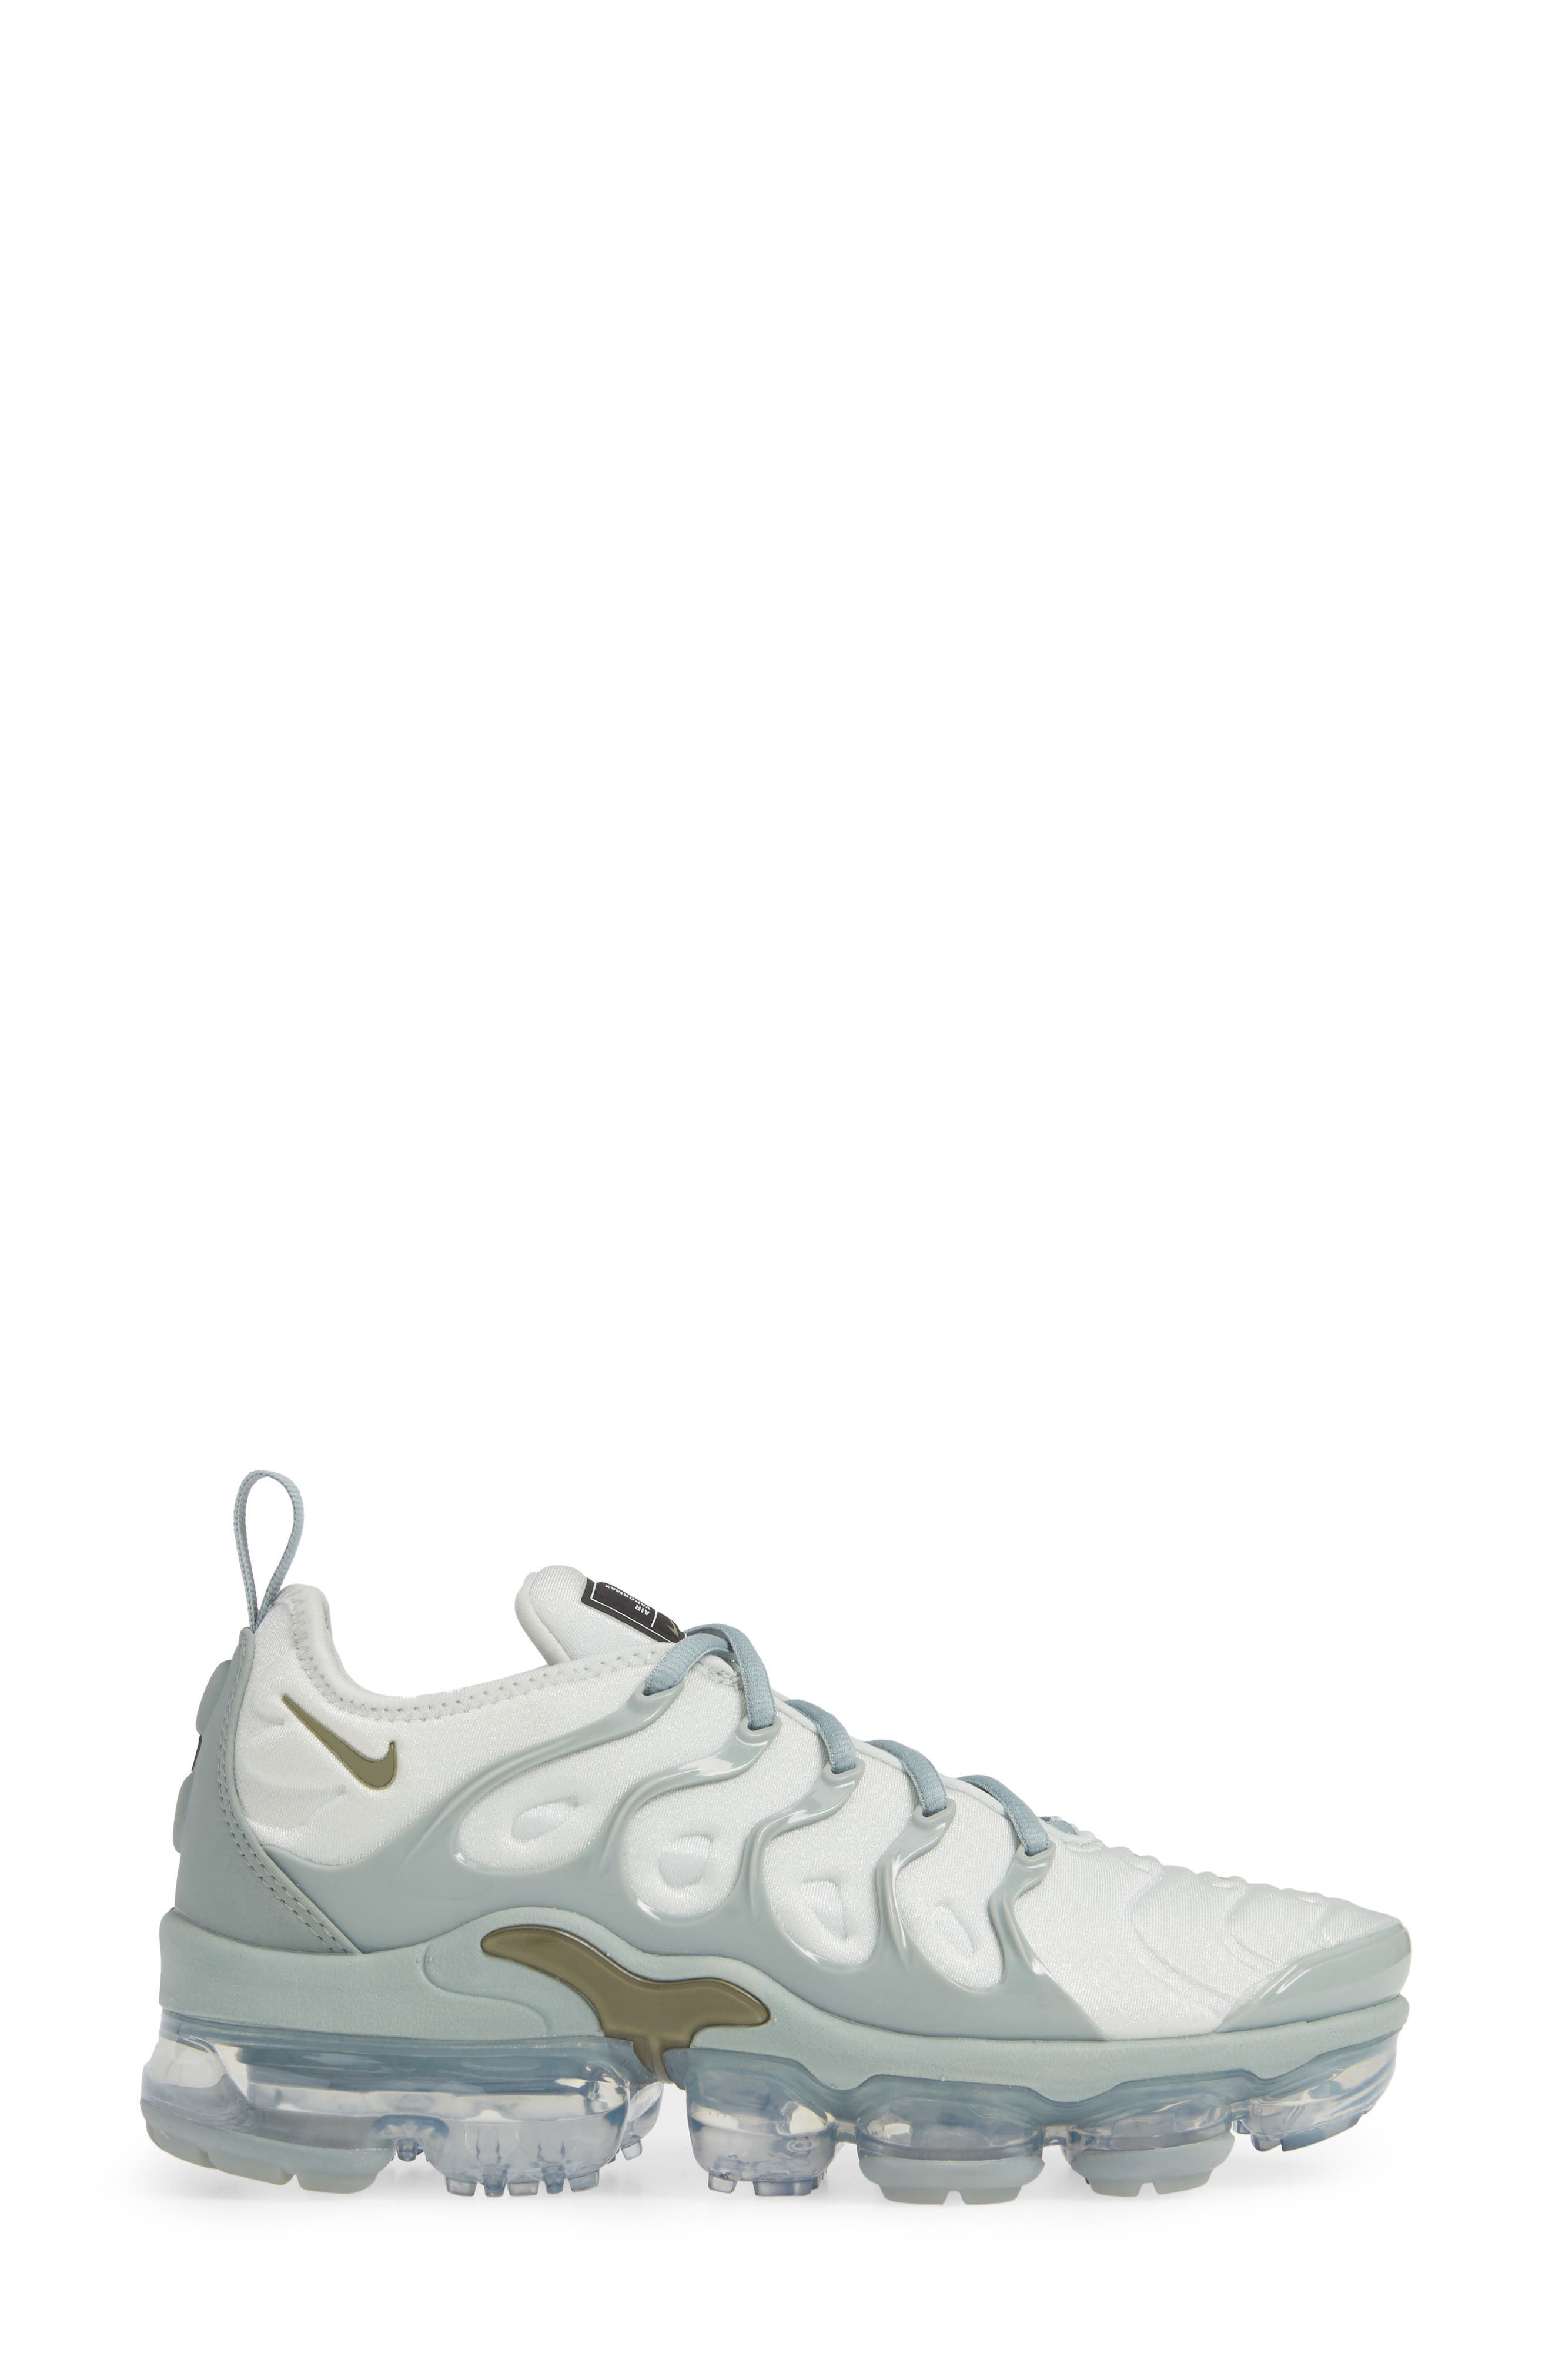 Air VaporMax Plus Sneaker,                             Alternate thumbnail 3, color,                             LIGHT SILVER/ OLIVE- GREEN